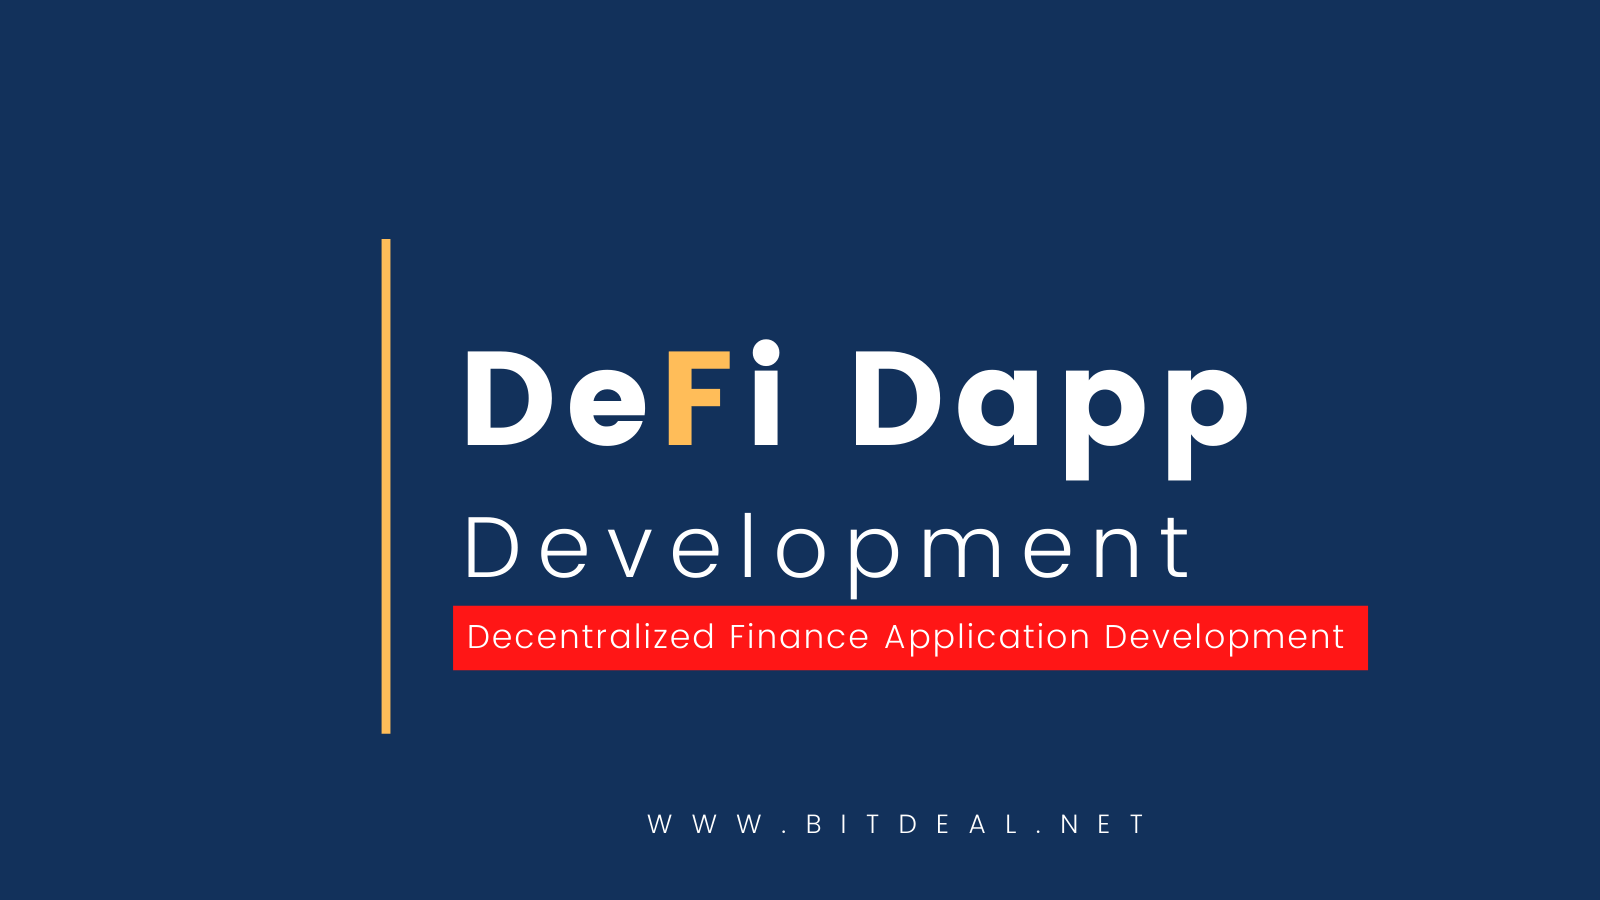 DeFi Dapp Development to Accelerate Your Financial Business and ROI